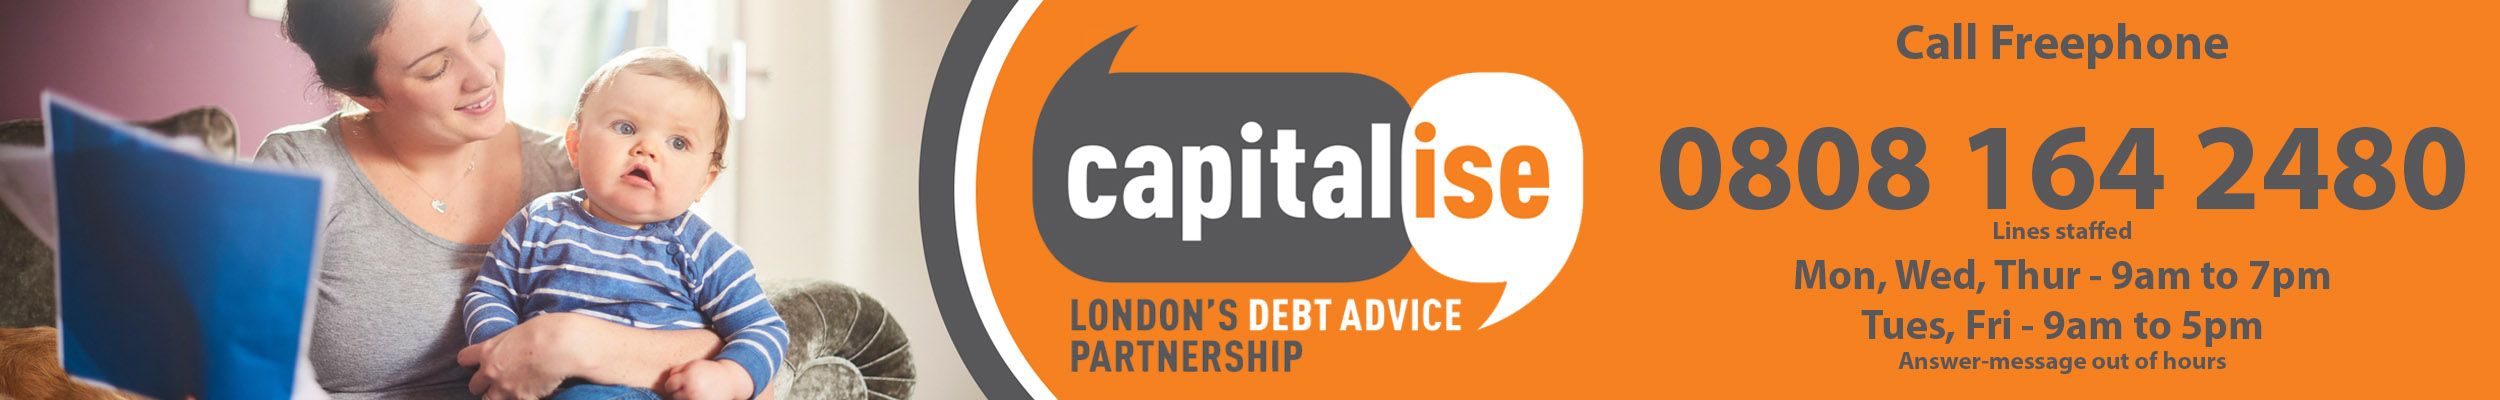 Capitalise Logo